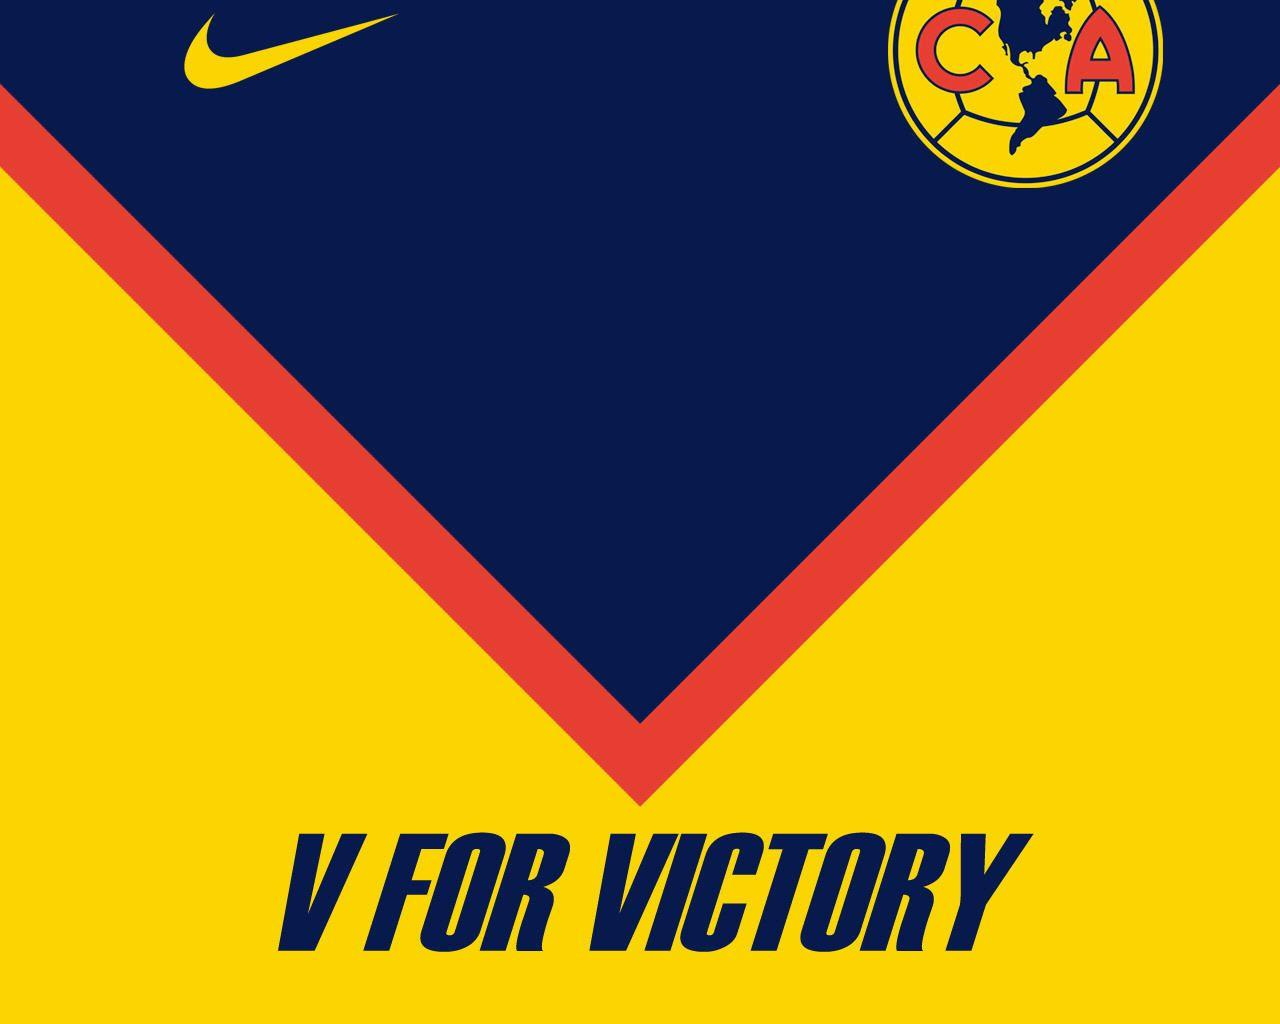 Club America nice wallpaper, Football Pictures and Photos